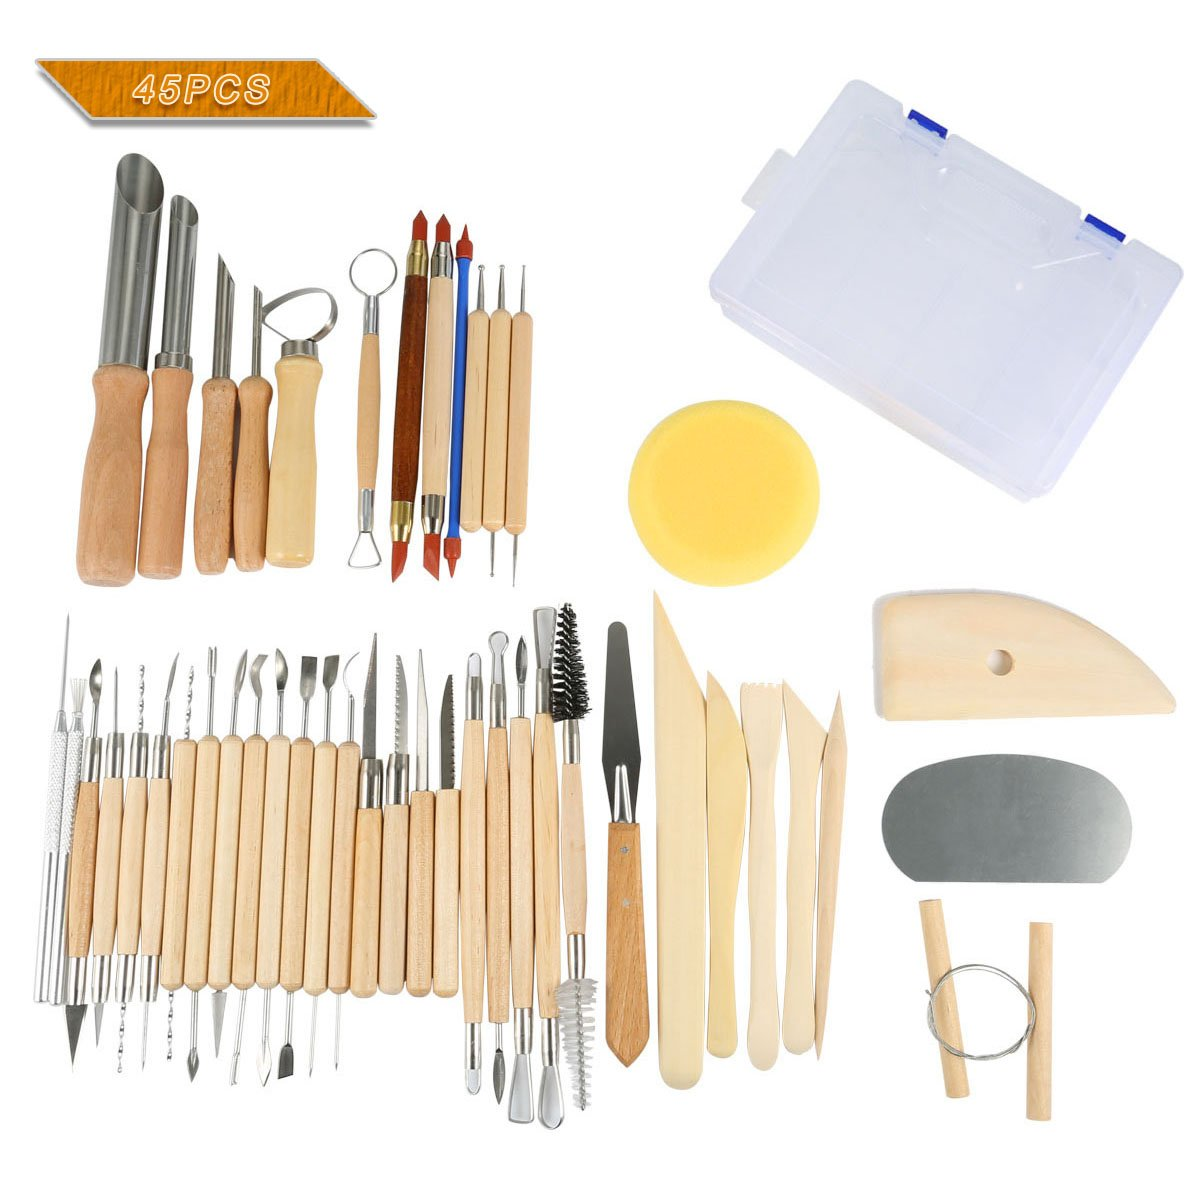 Hotab 45pcs Set Wooden Pottery & Clay Sculpting Tools with Plastic Case by Hotab (Image #1)